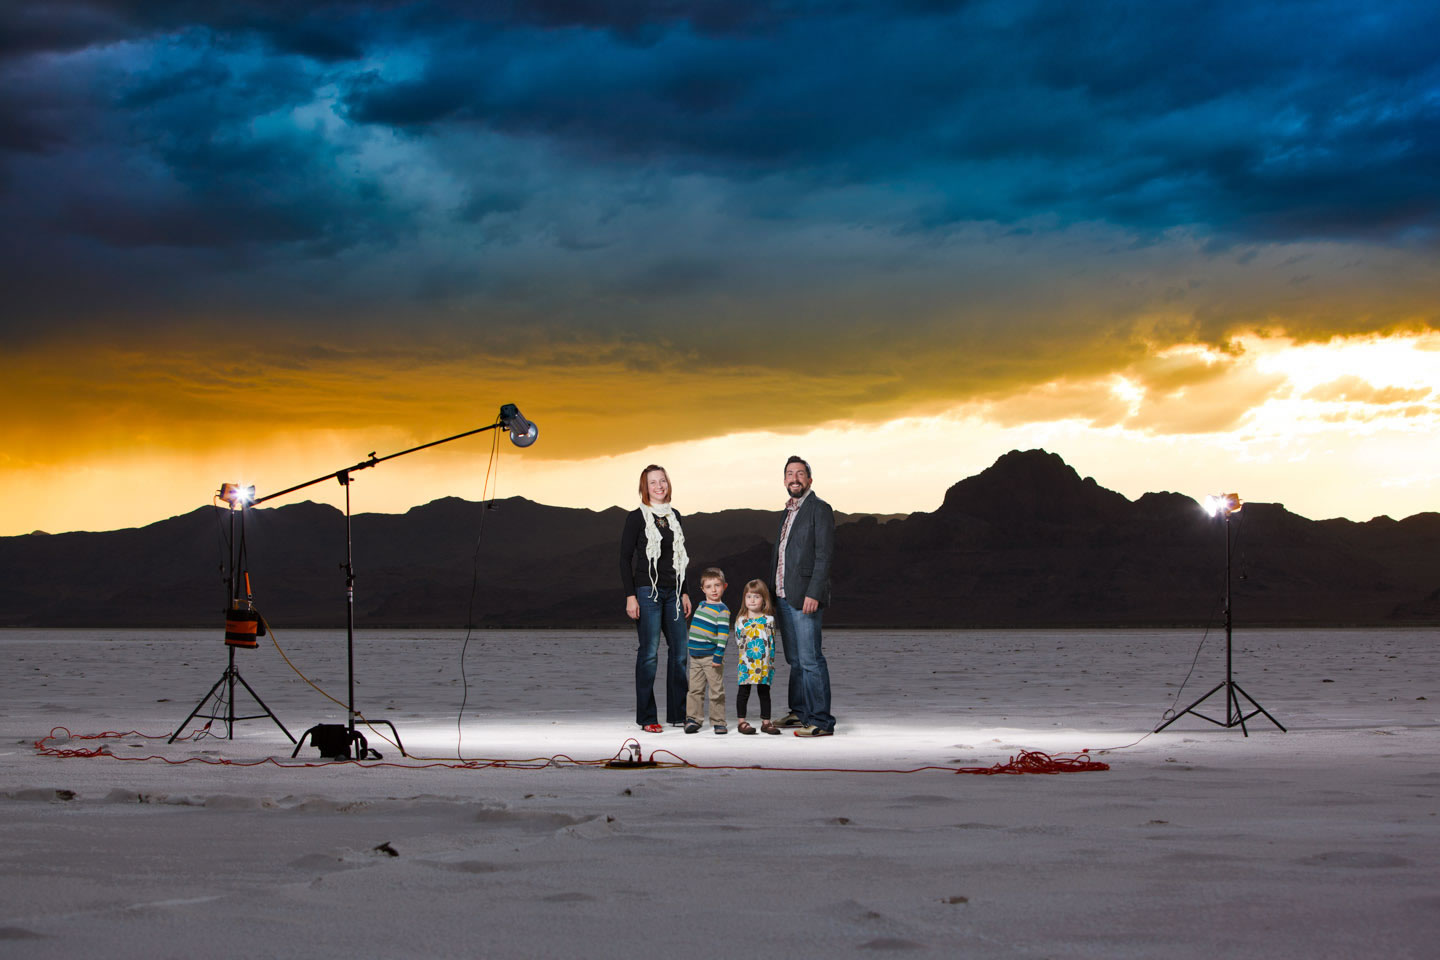 Family added to Salt Flats using Photoshop